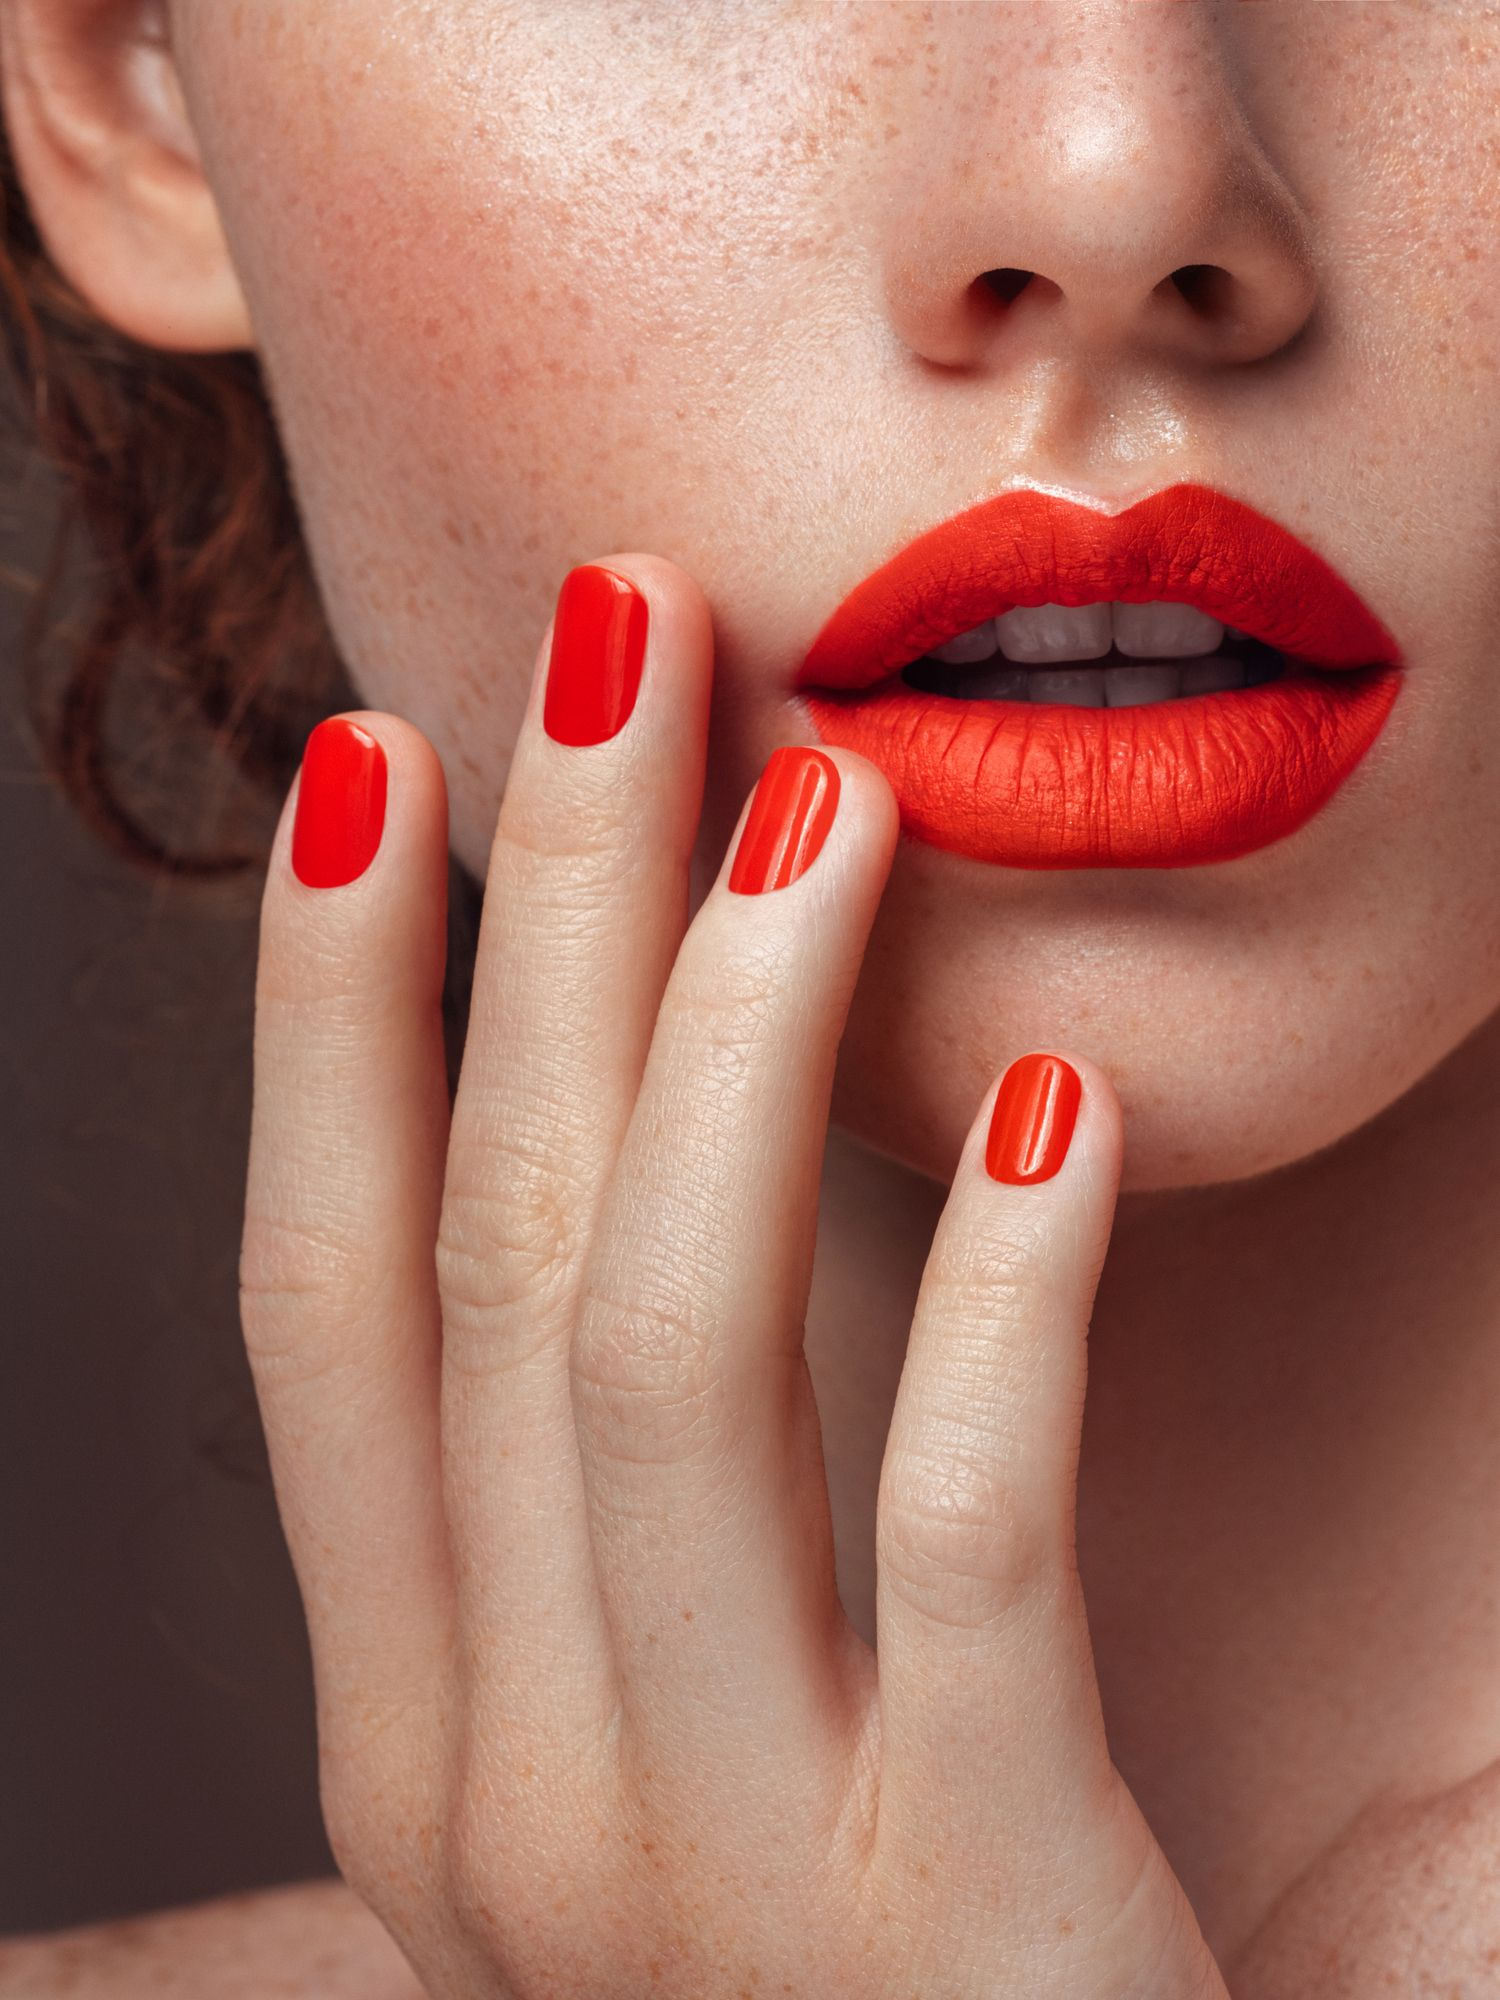 Woman's red lips and manicure close-up